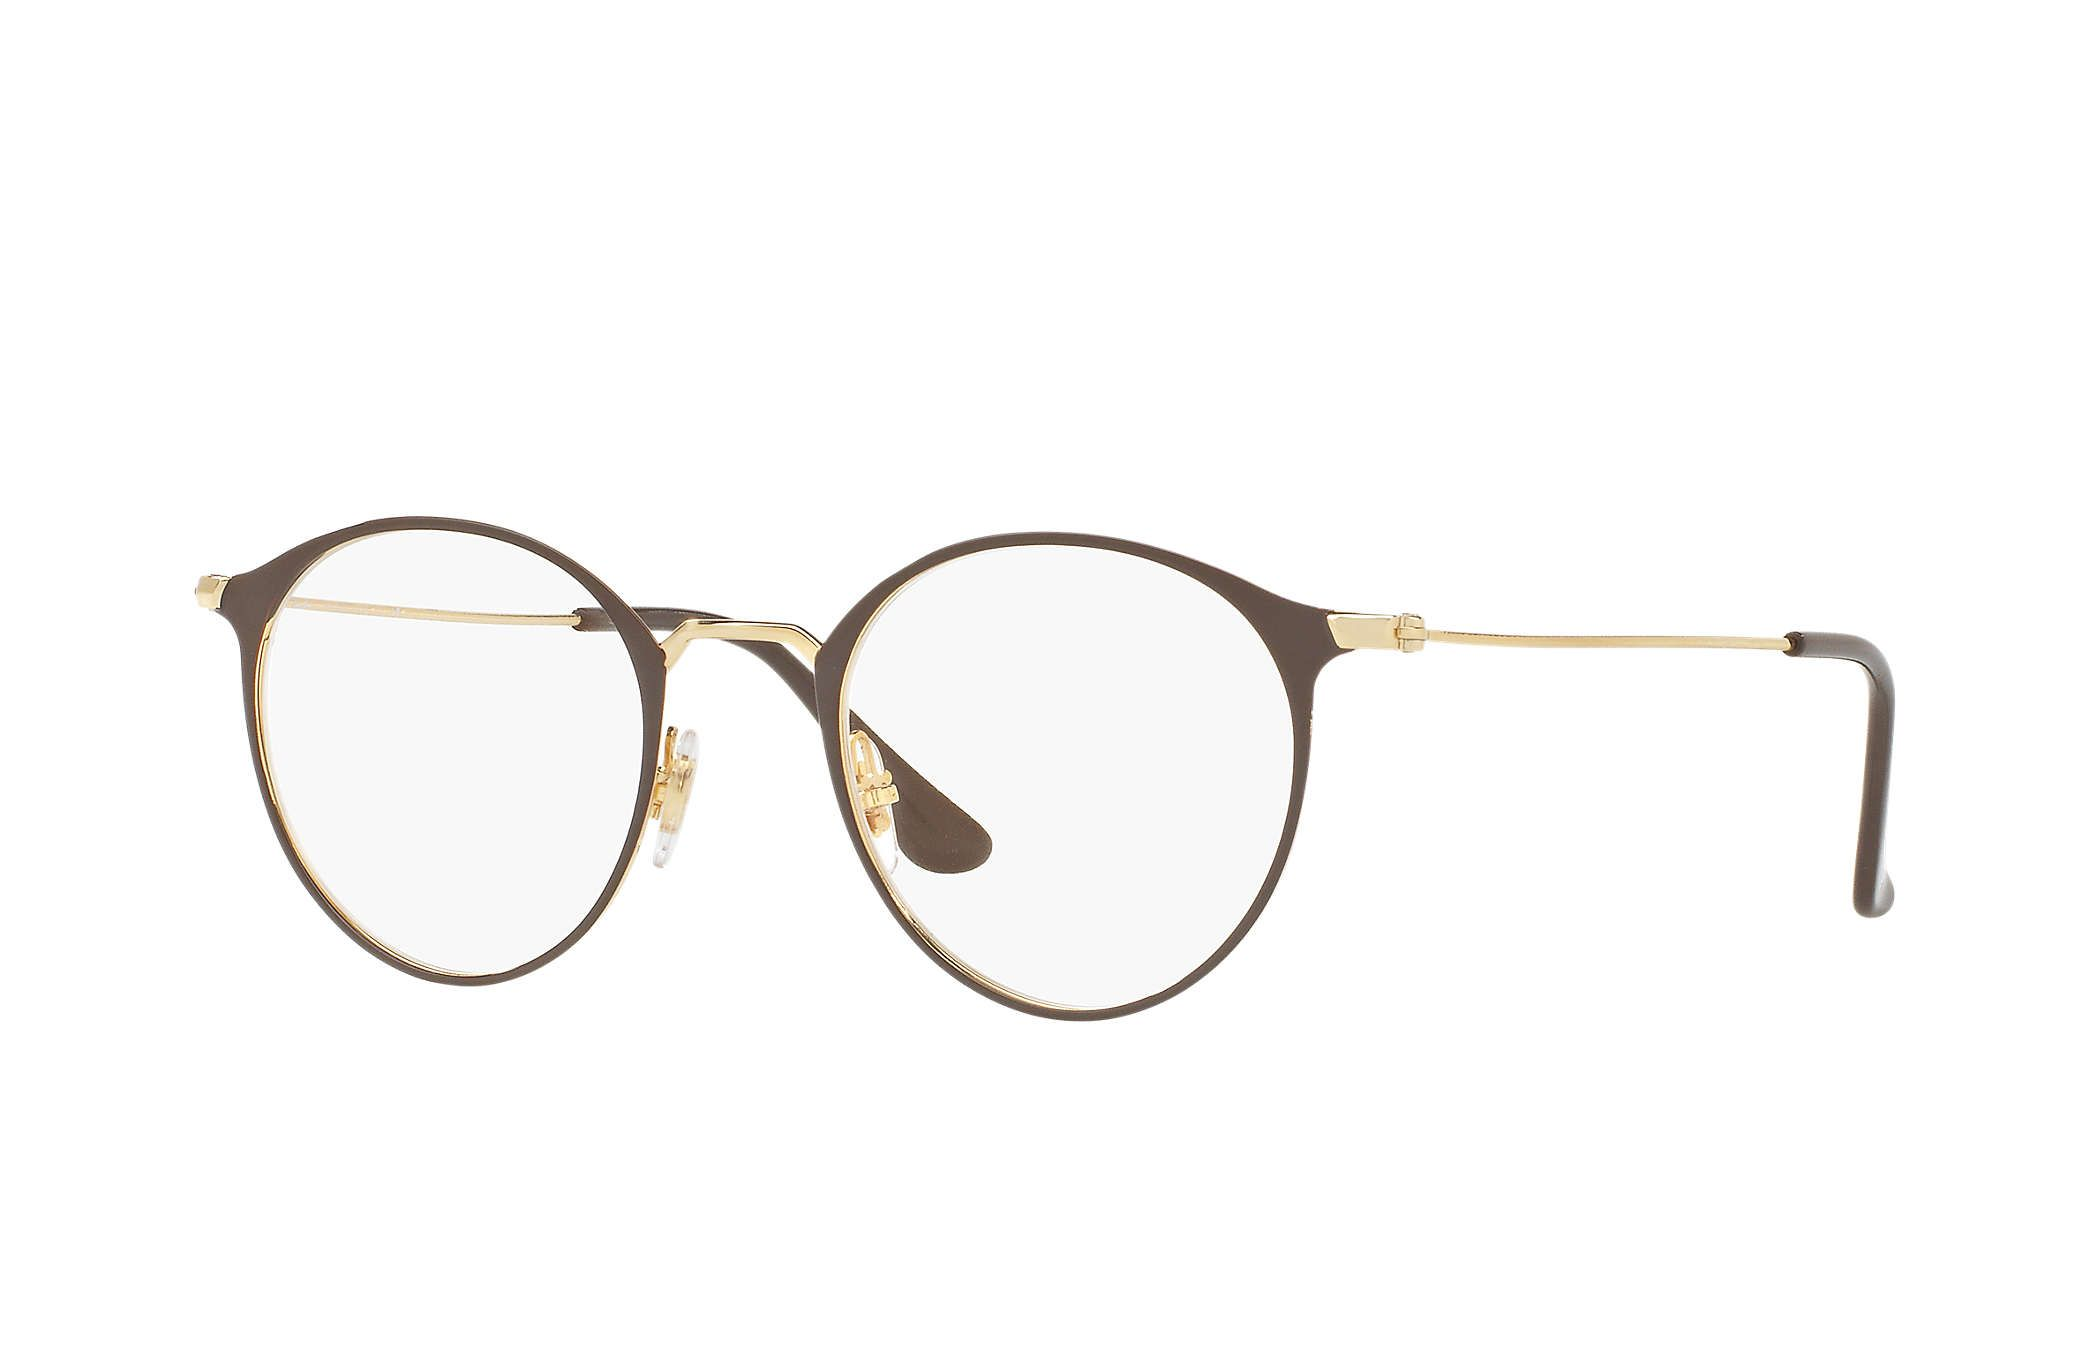 Ray-Ban 0RX6378-RB6378 Brown; Gold OPTICAL | Optics | Pinterest ...